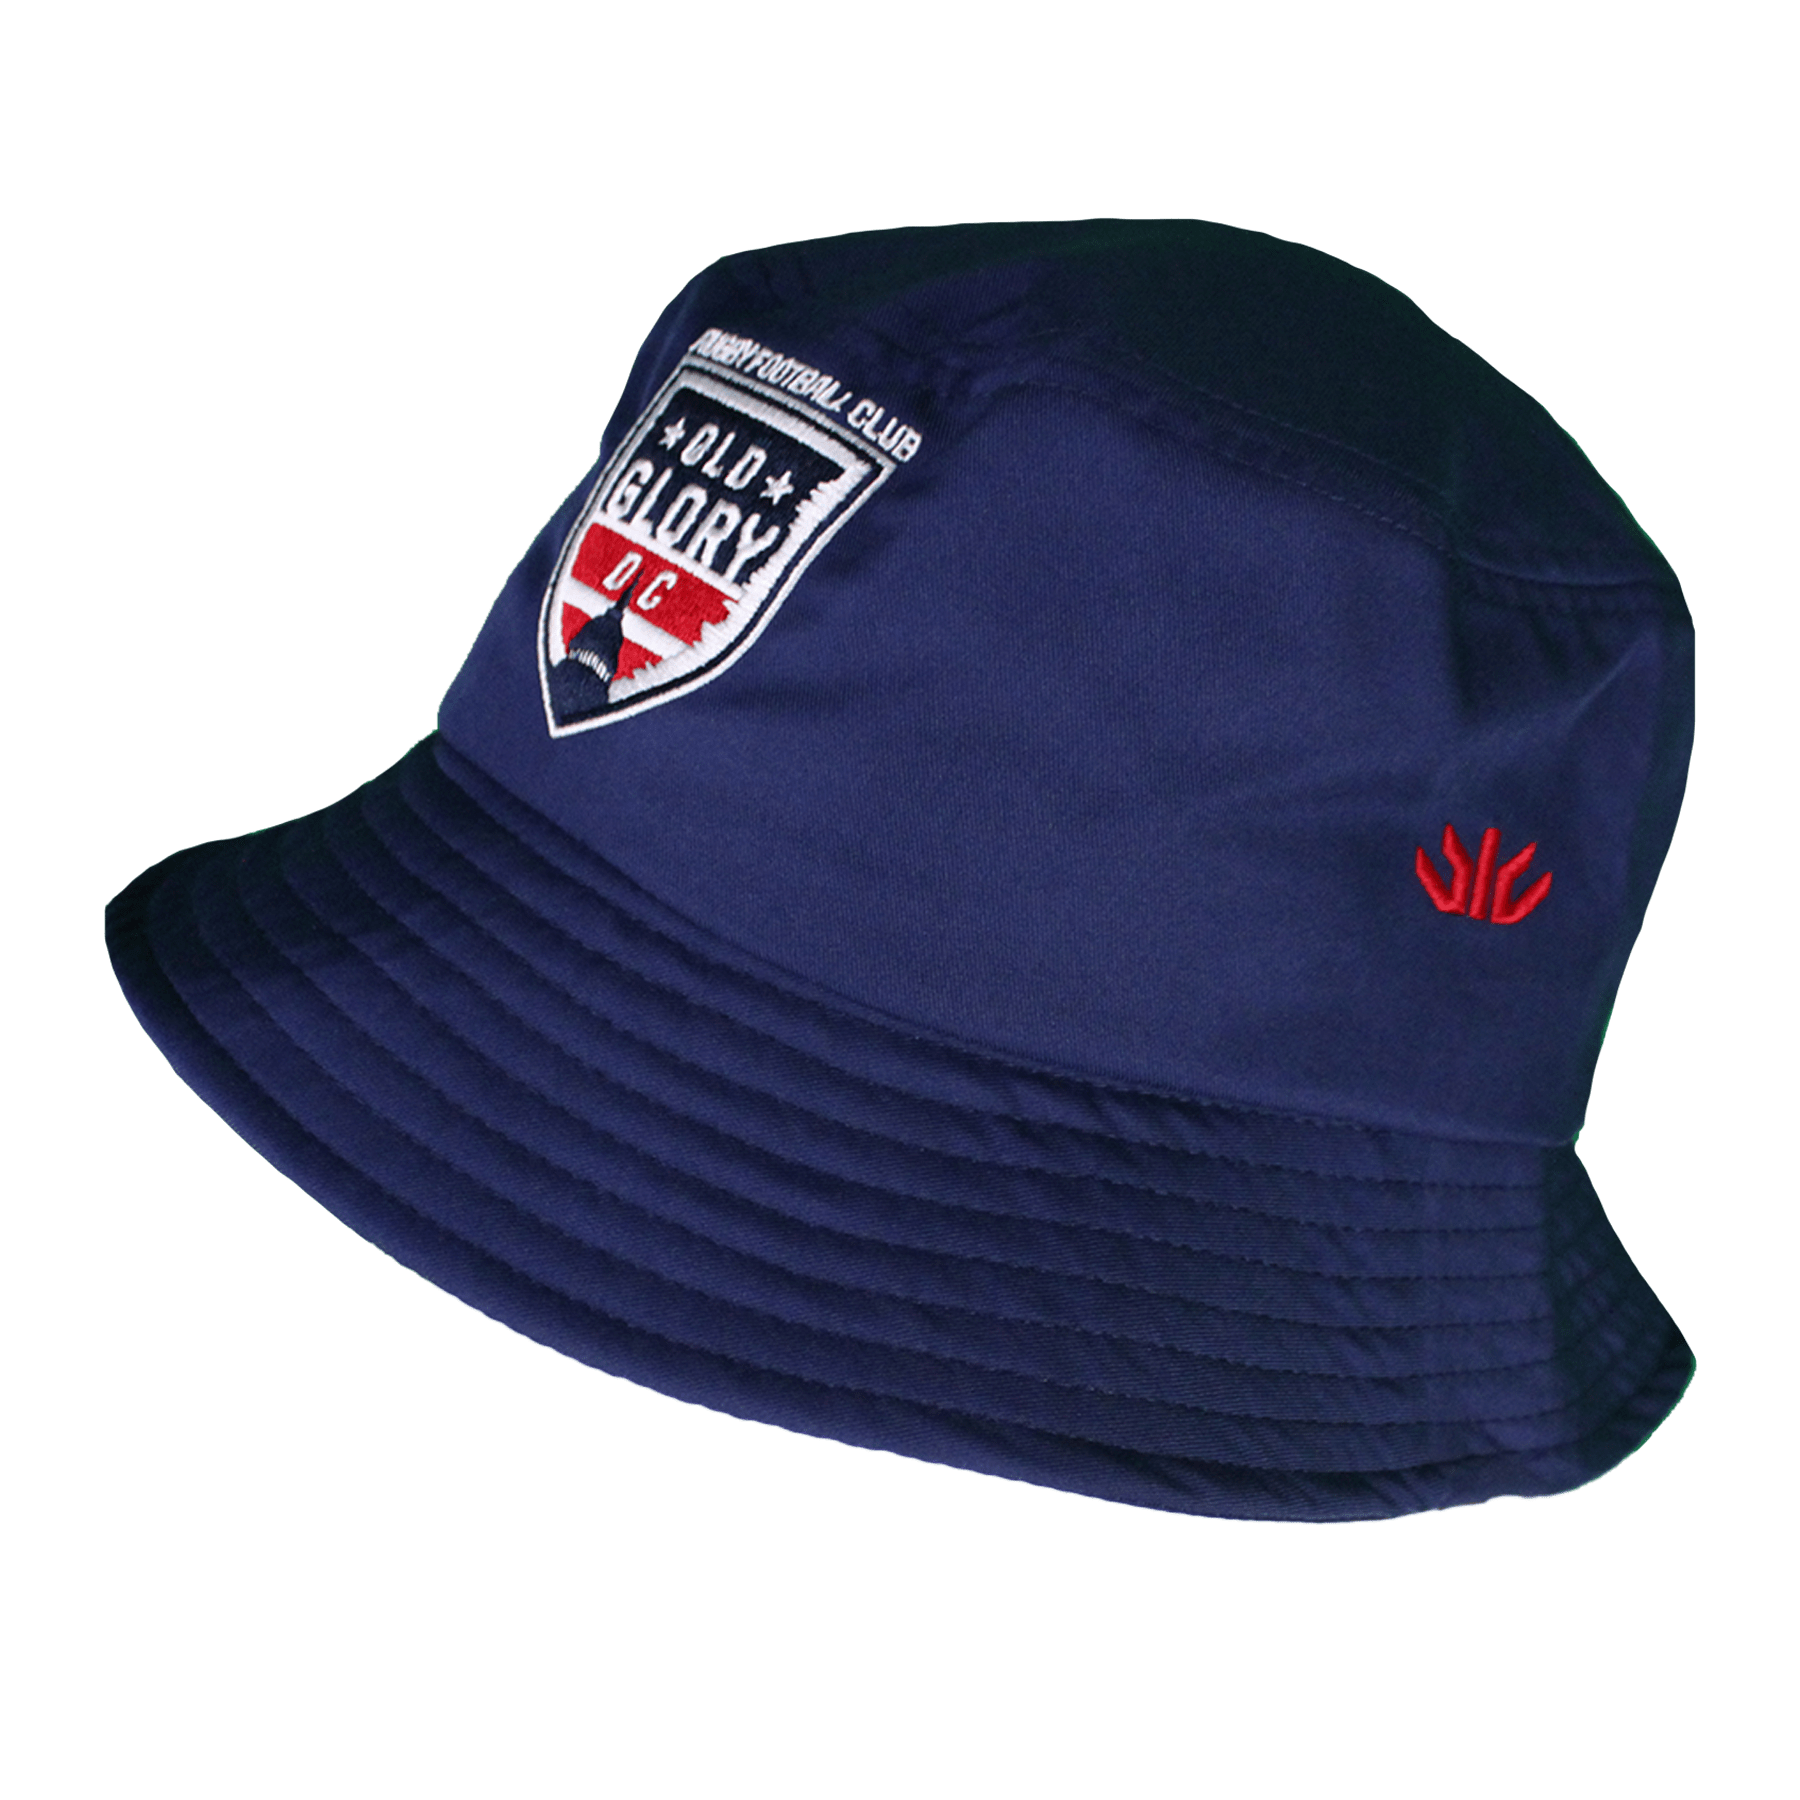 Paladin Old Glory DC Rugby Bucket Hat